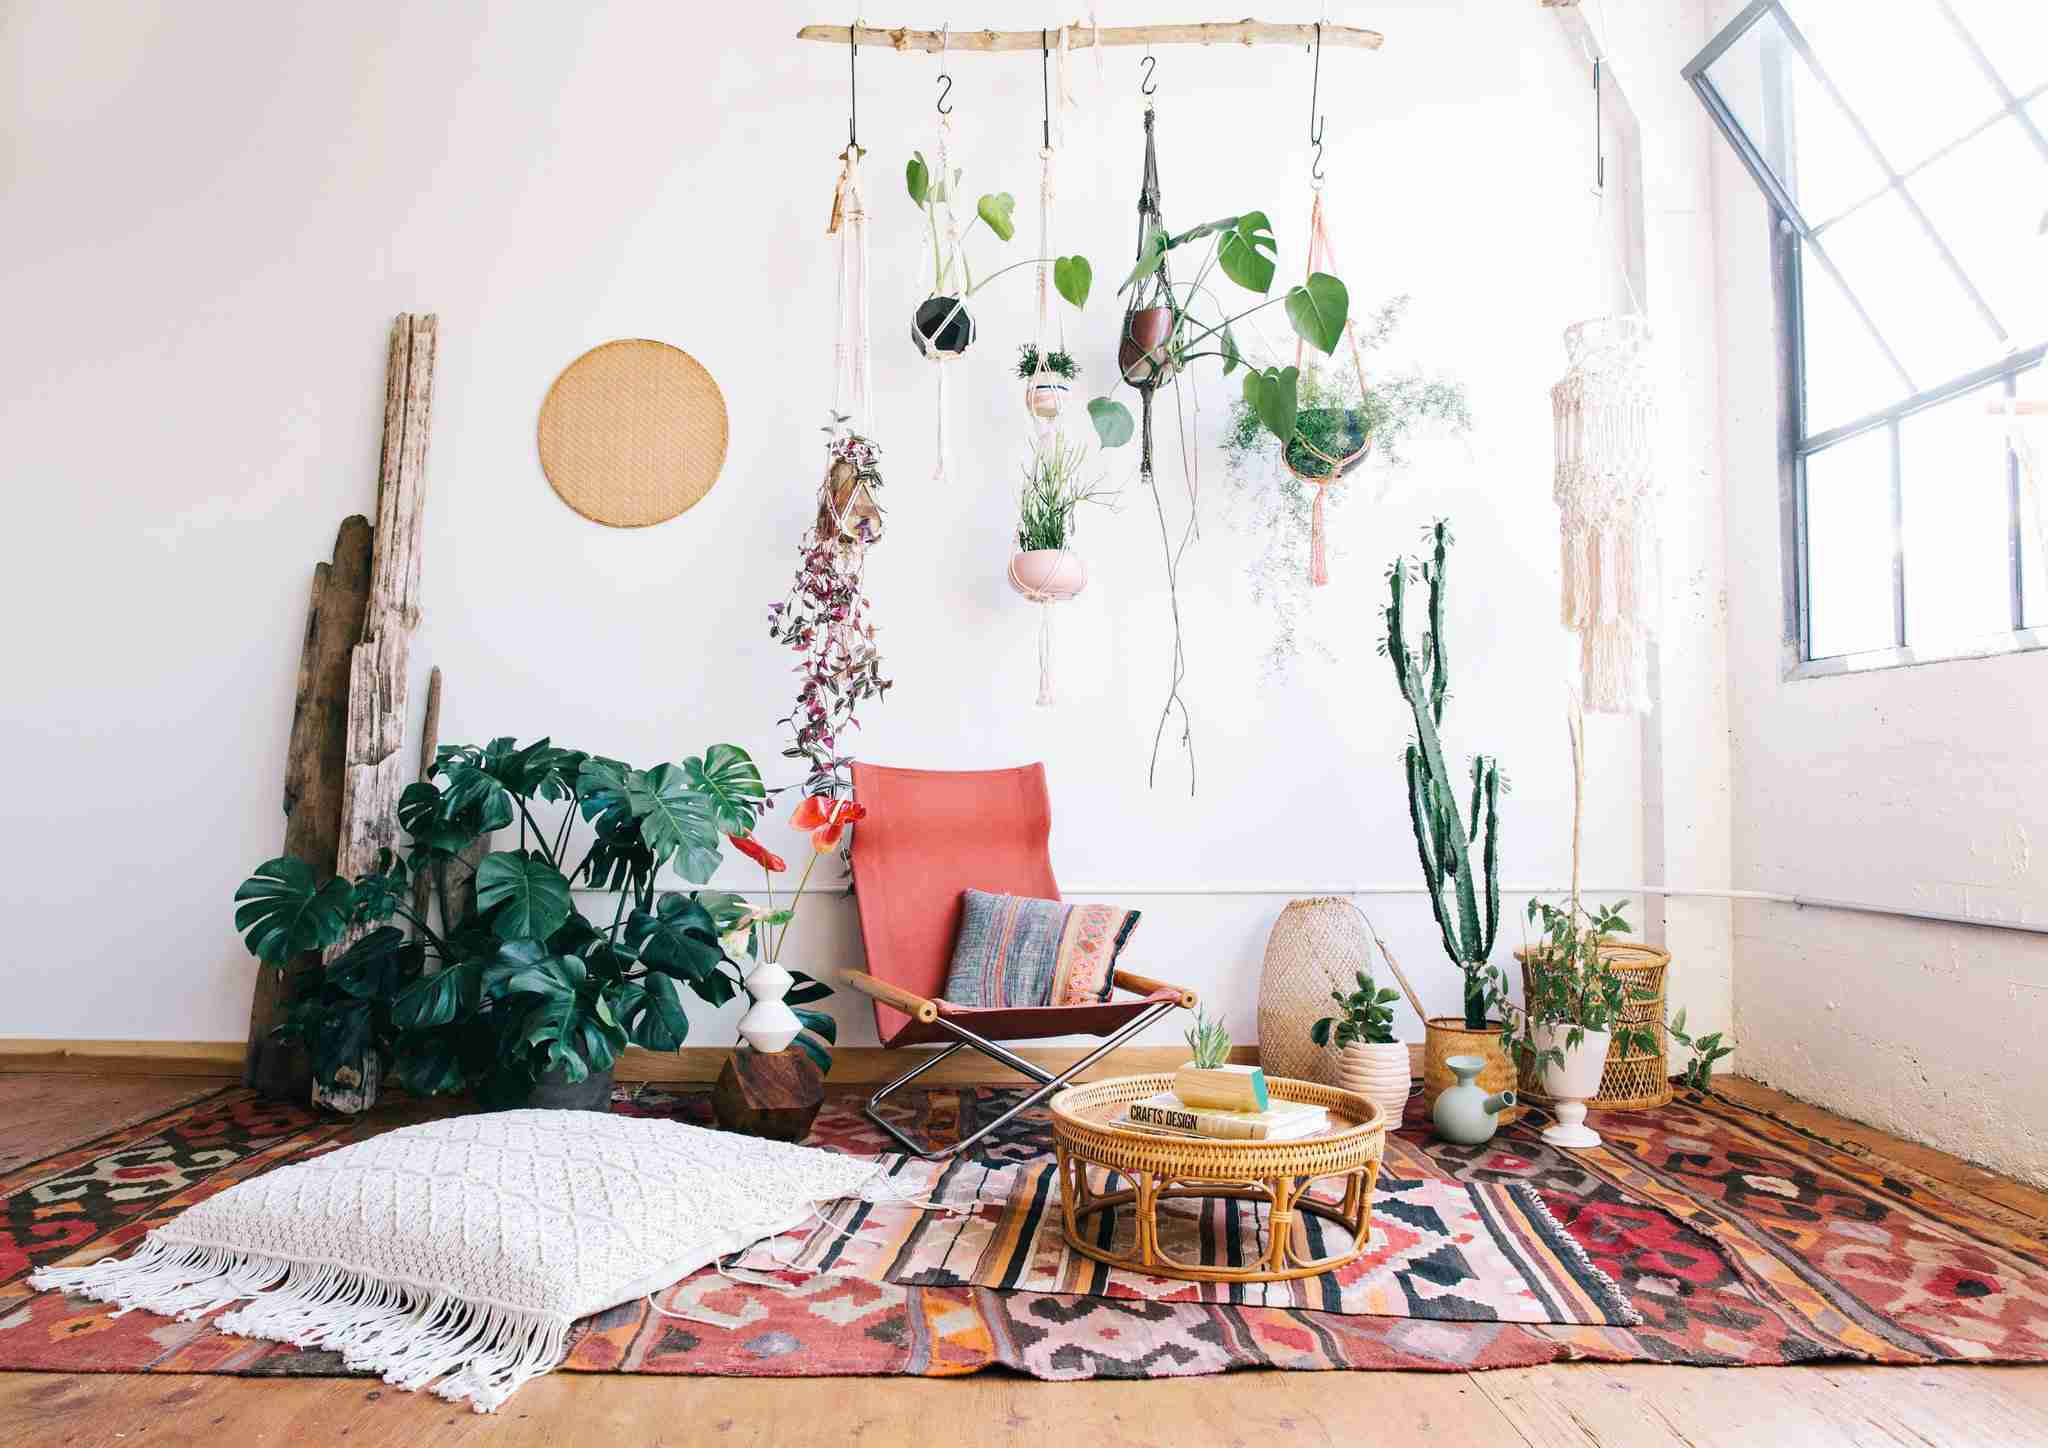 Room with macrame